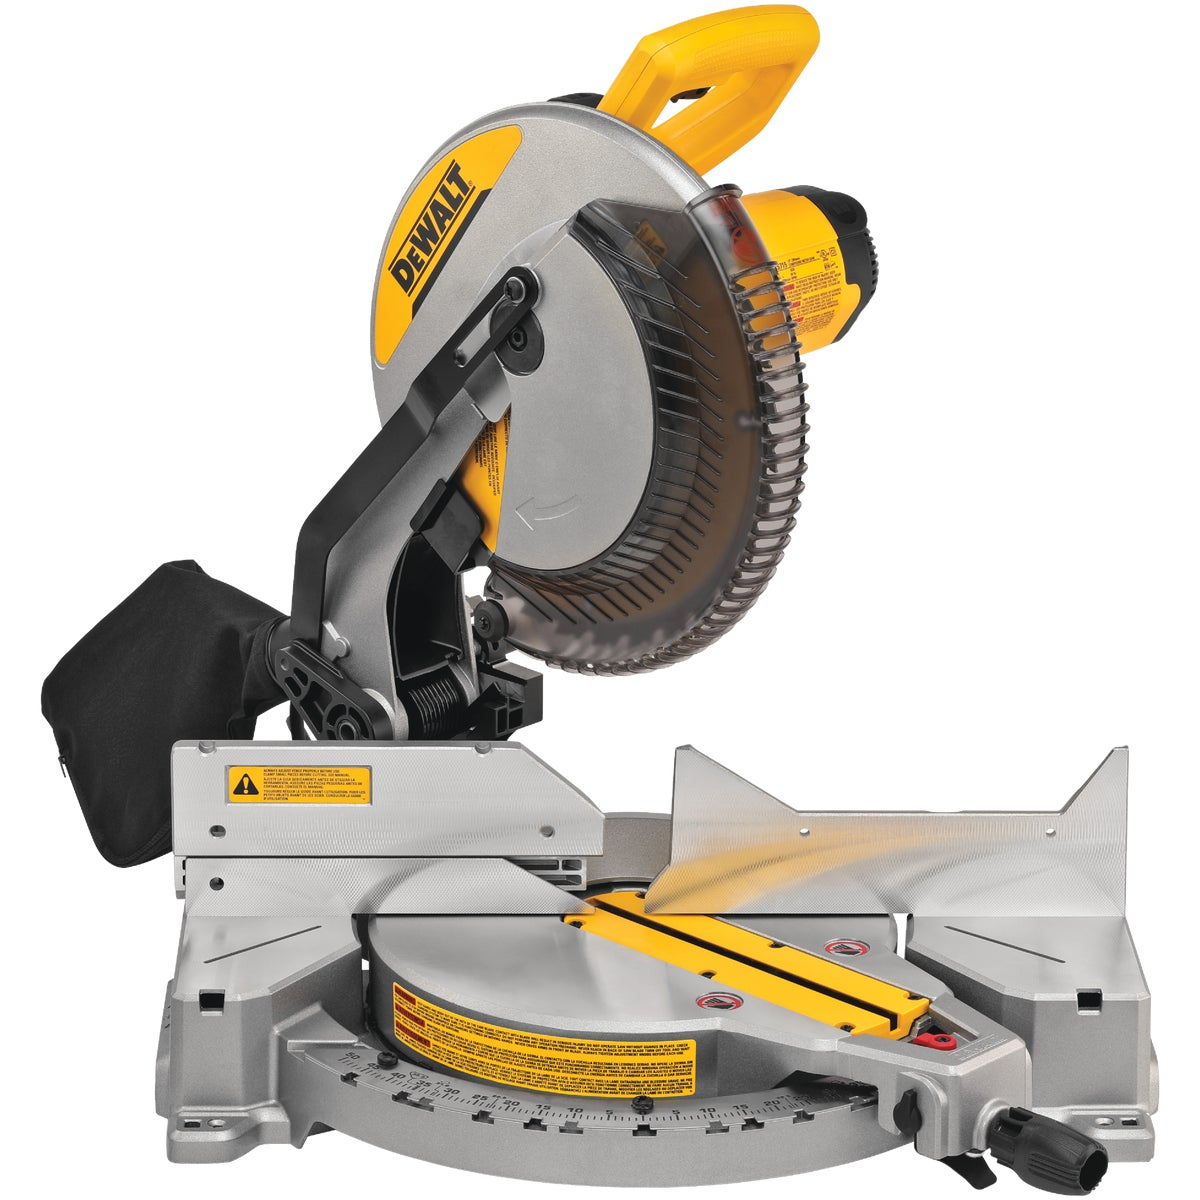 "12"" COMPOUND MITER SAW - DW715 by DeWalt"